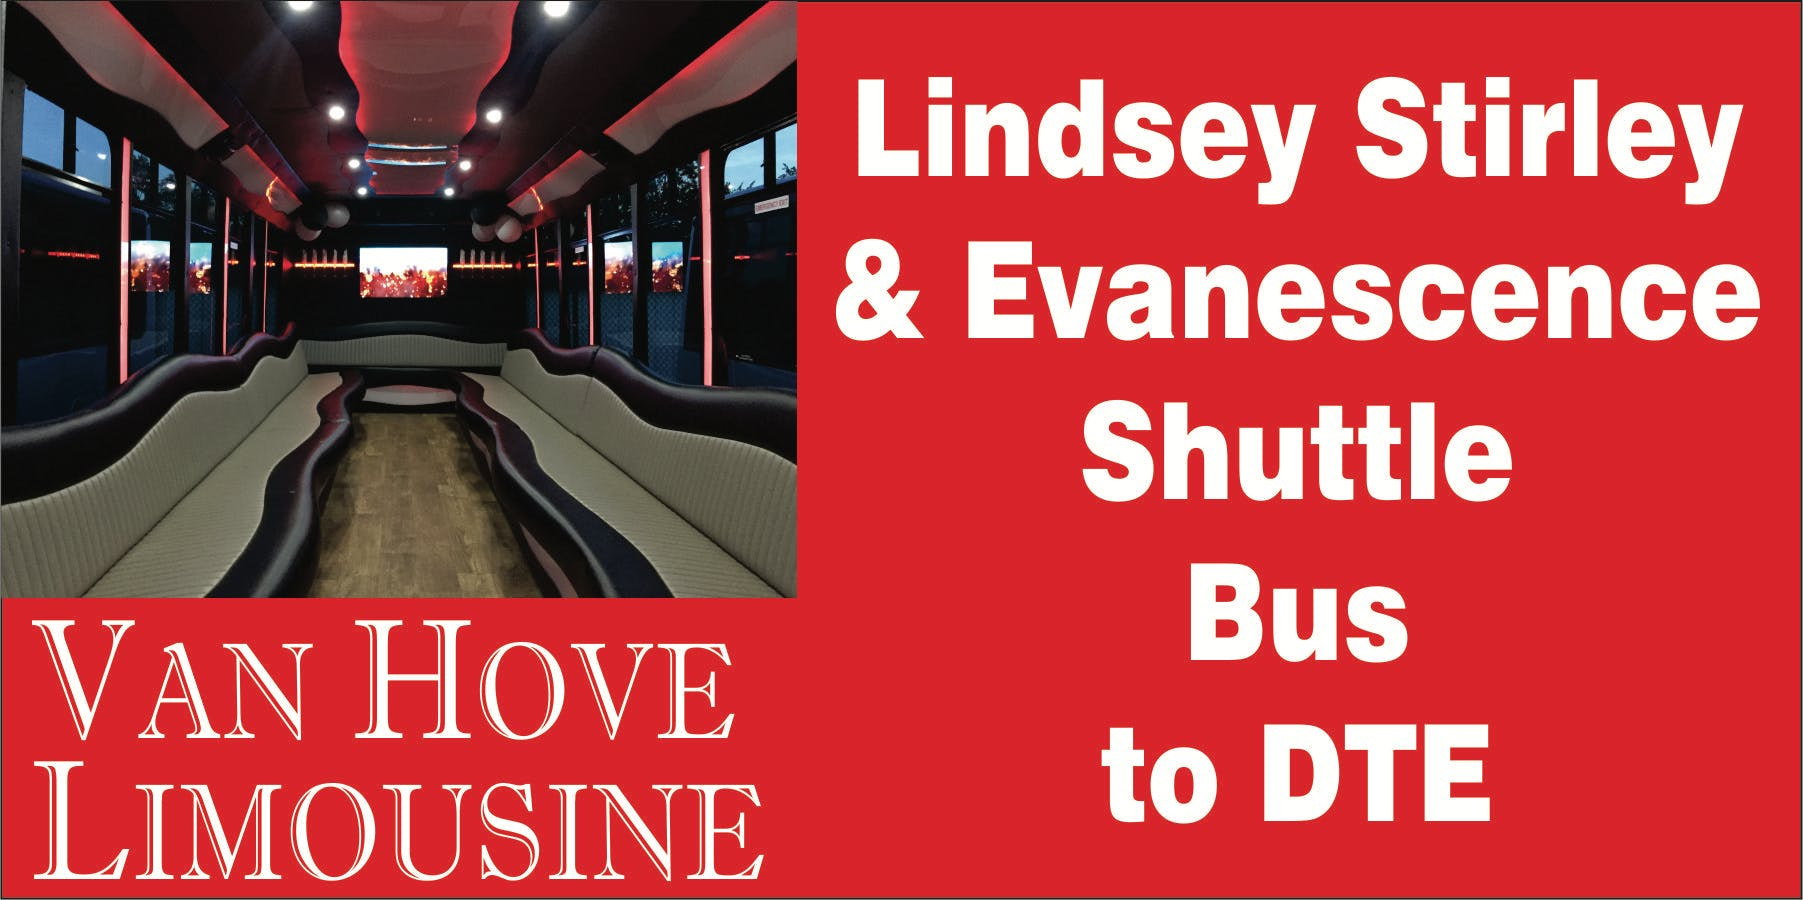 lindsey stirling shuttle bus to dte music theatre from hamlin pub 25